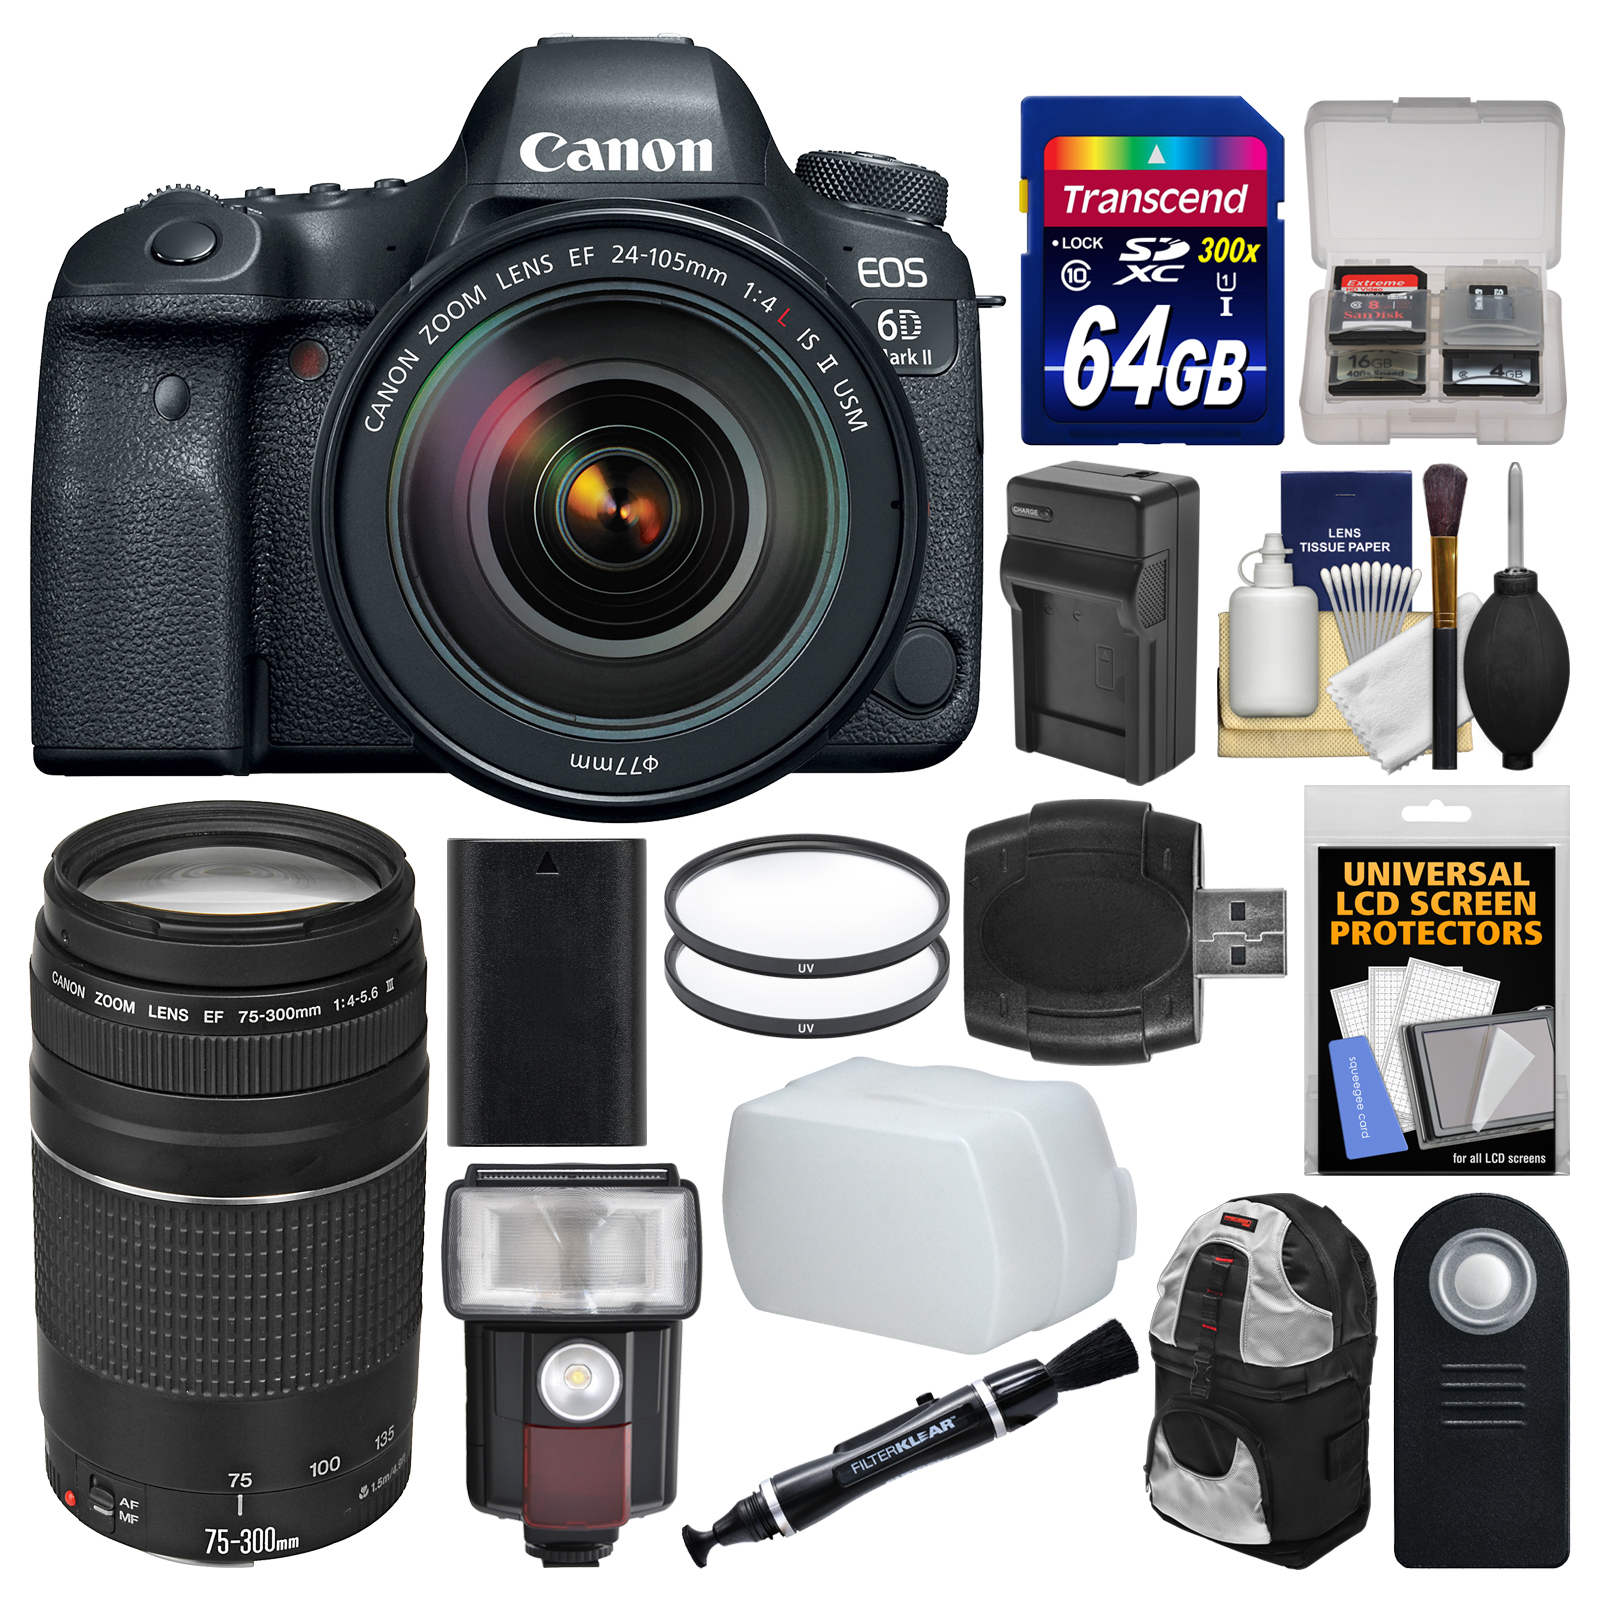 Canon EOS 6D Mark II Wi-Fi Digital SLR Camera & EF 24-105mm f 4L IS II USM + 75-300mm III Lens + 64GB Card +... by Canon